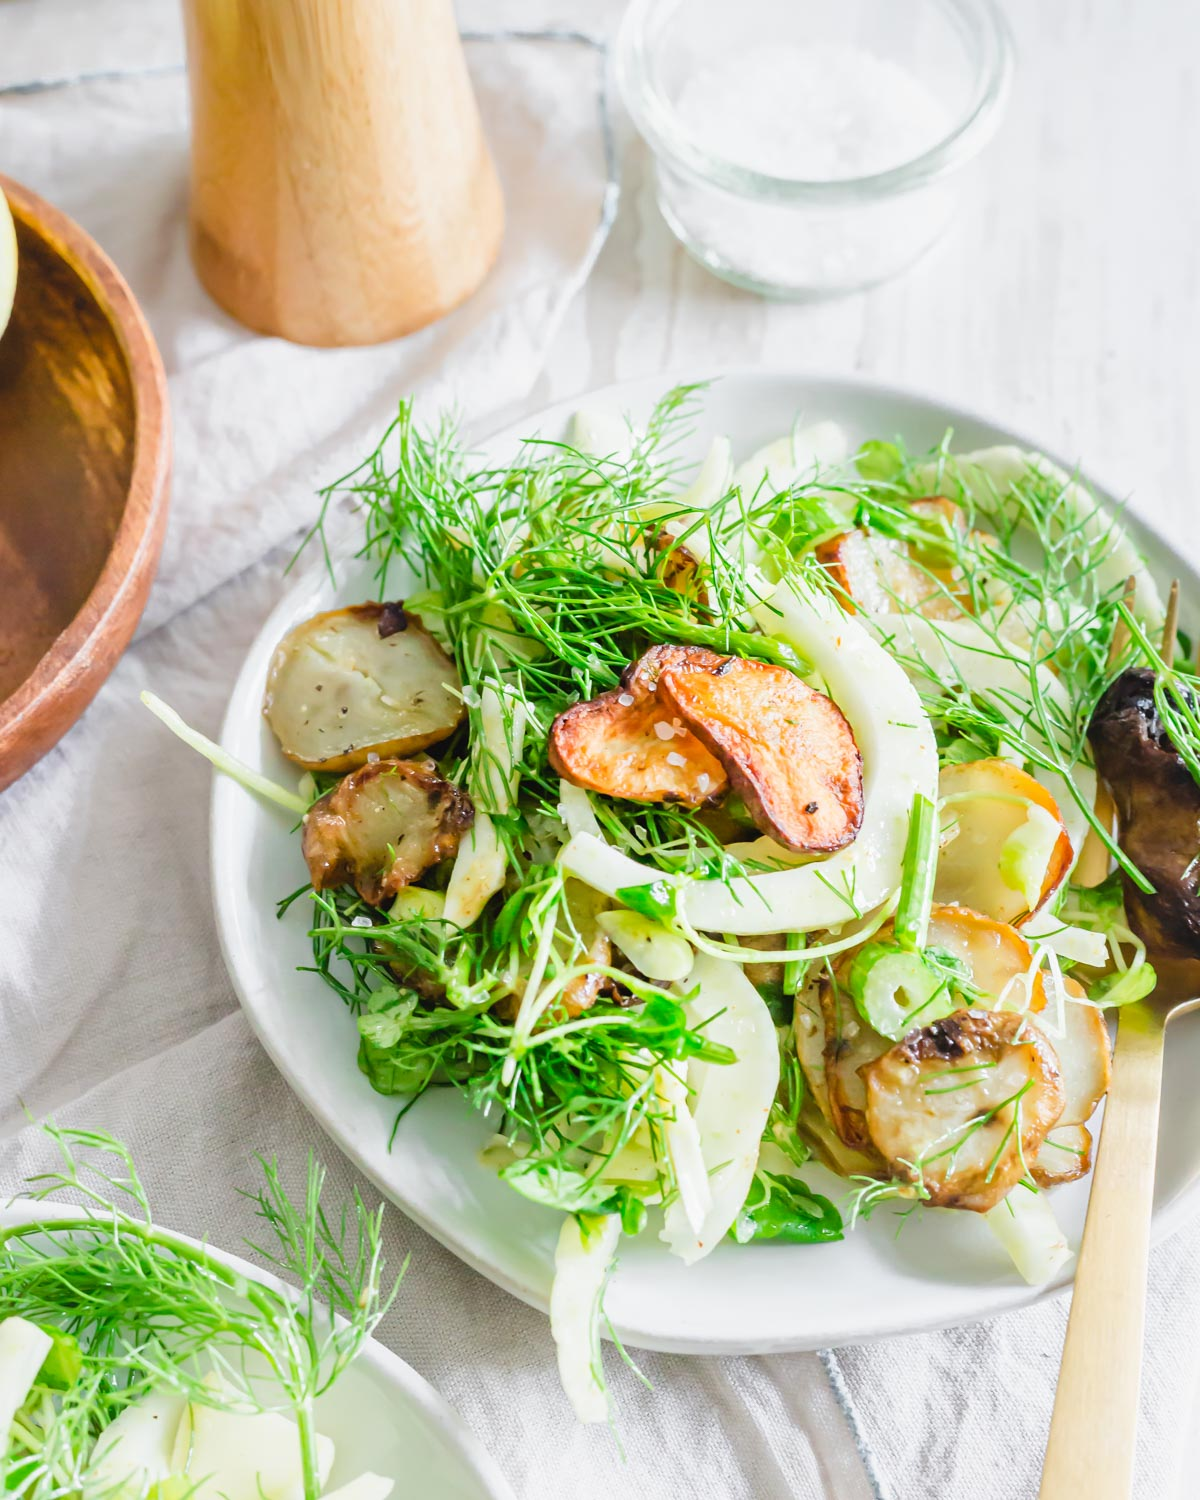 Fennel and arugula salad with roasted sunchokes tossed in a lemon mustard dressing on a plate garnished with flaky sea salt.